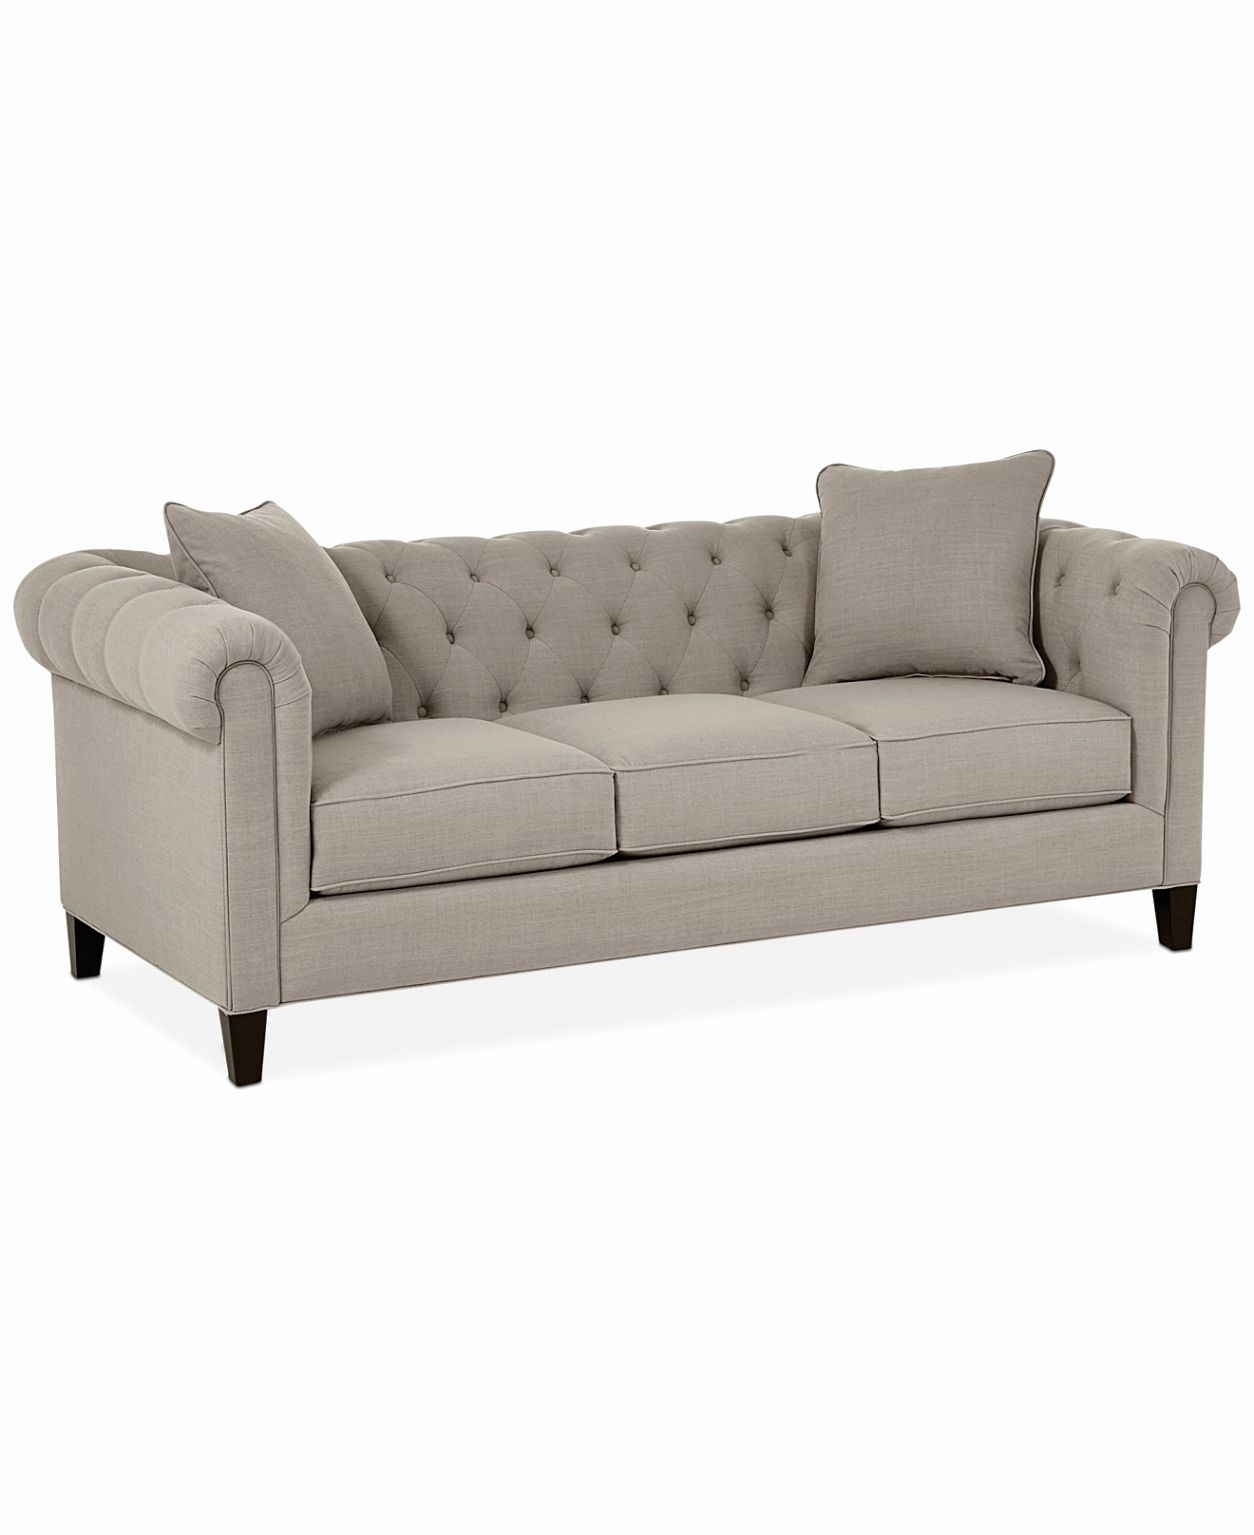 lovely sofa bed macys plan-Stunning sofa Bed Macys Collection